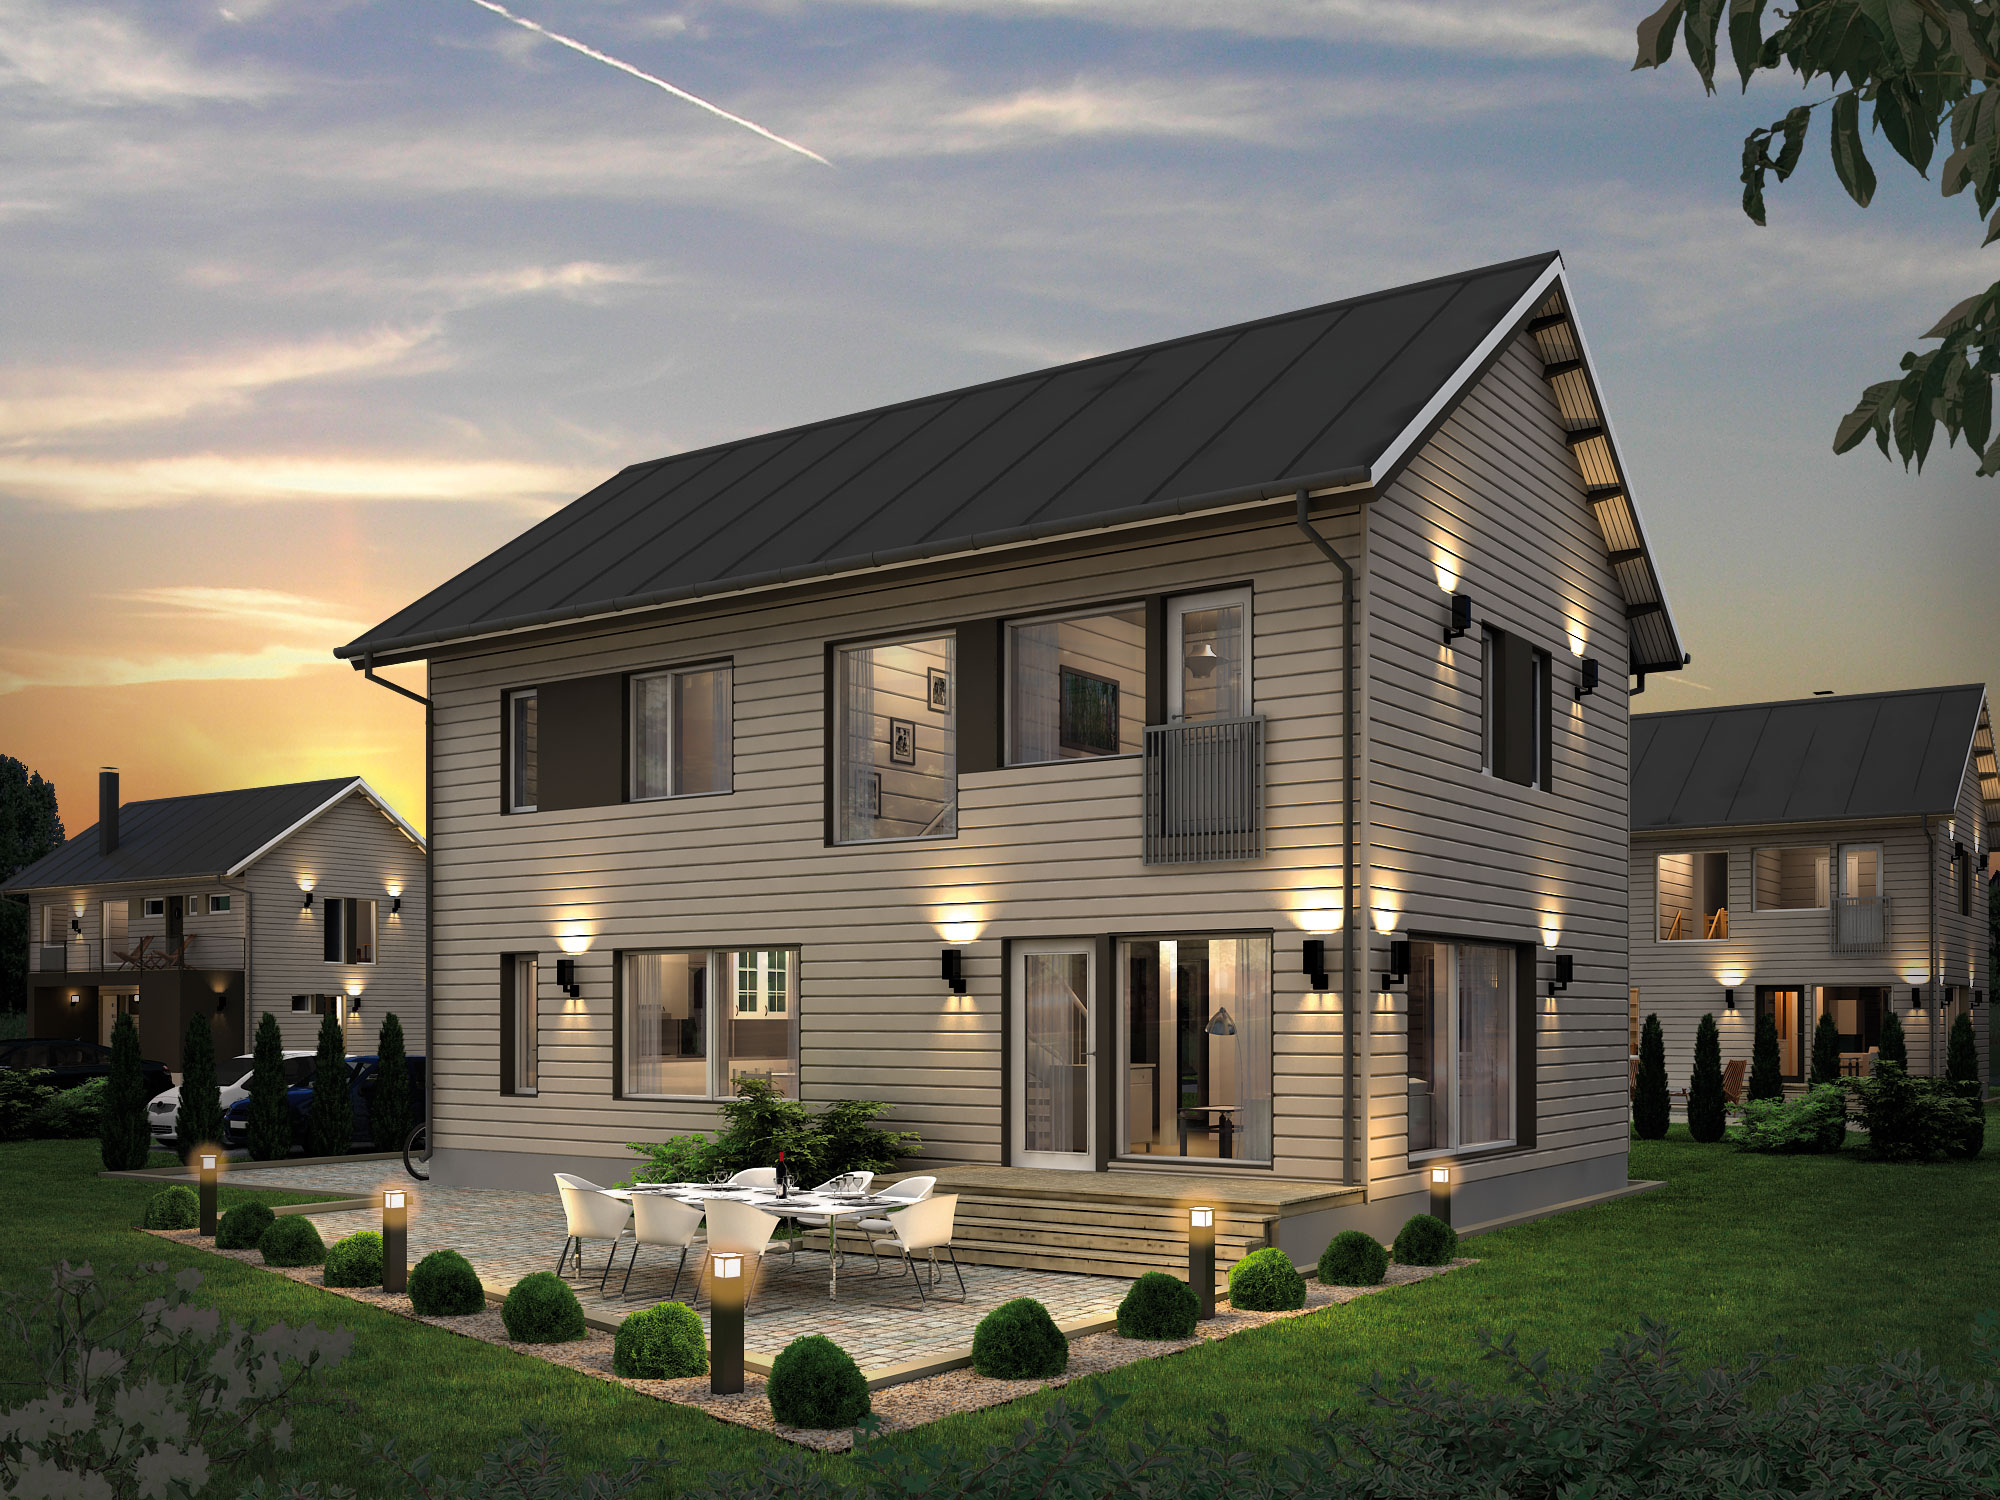 Prefab homes and modern prefabricated panelized home - Average price of a modular home ...